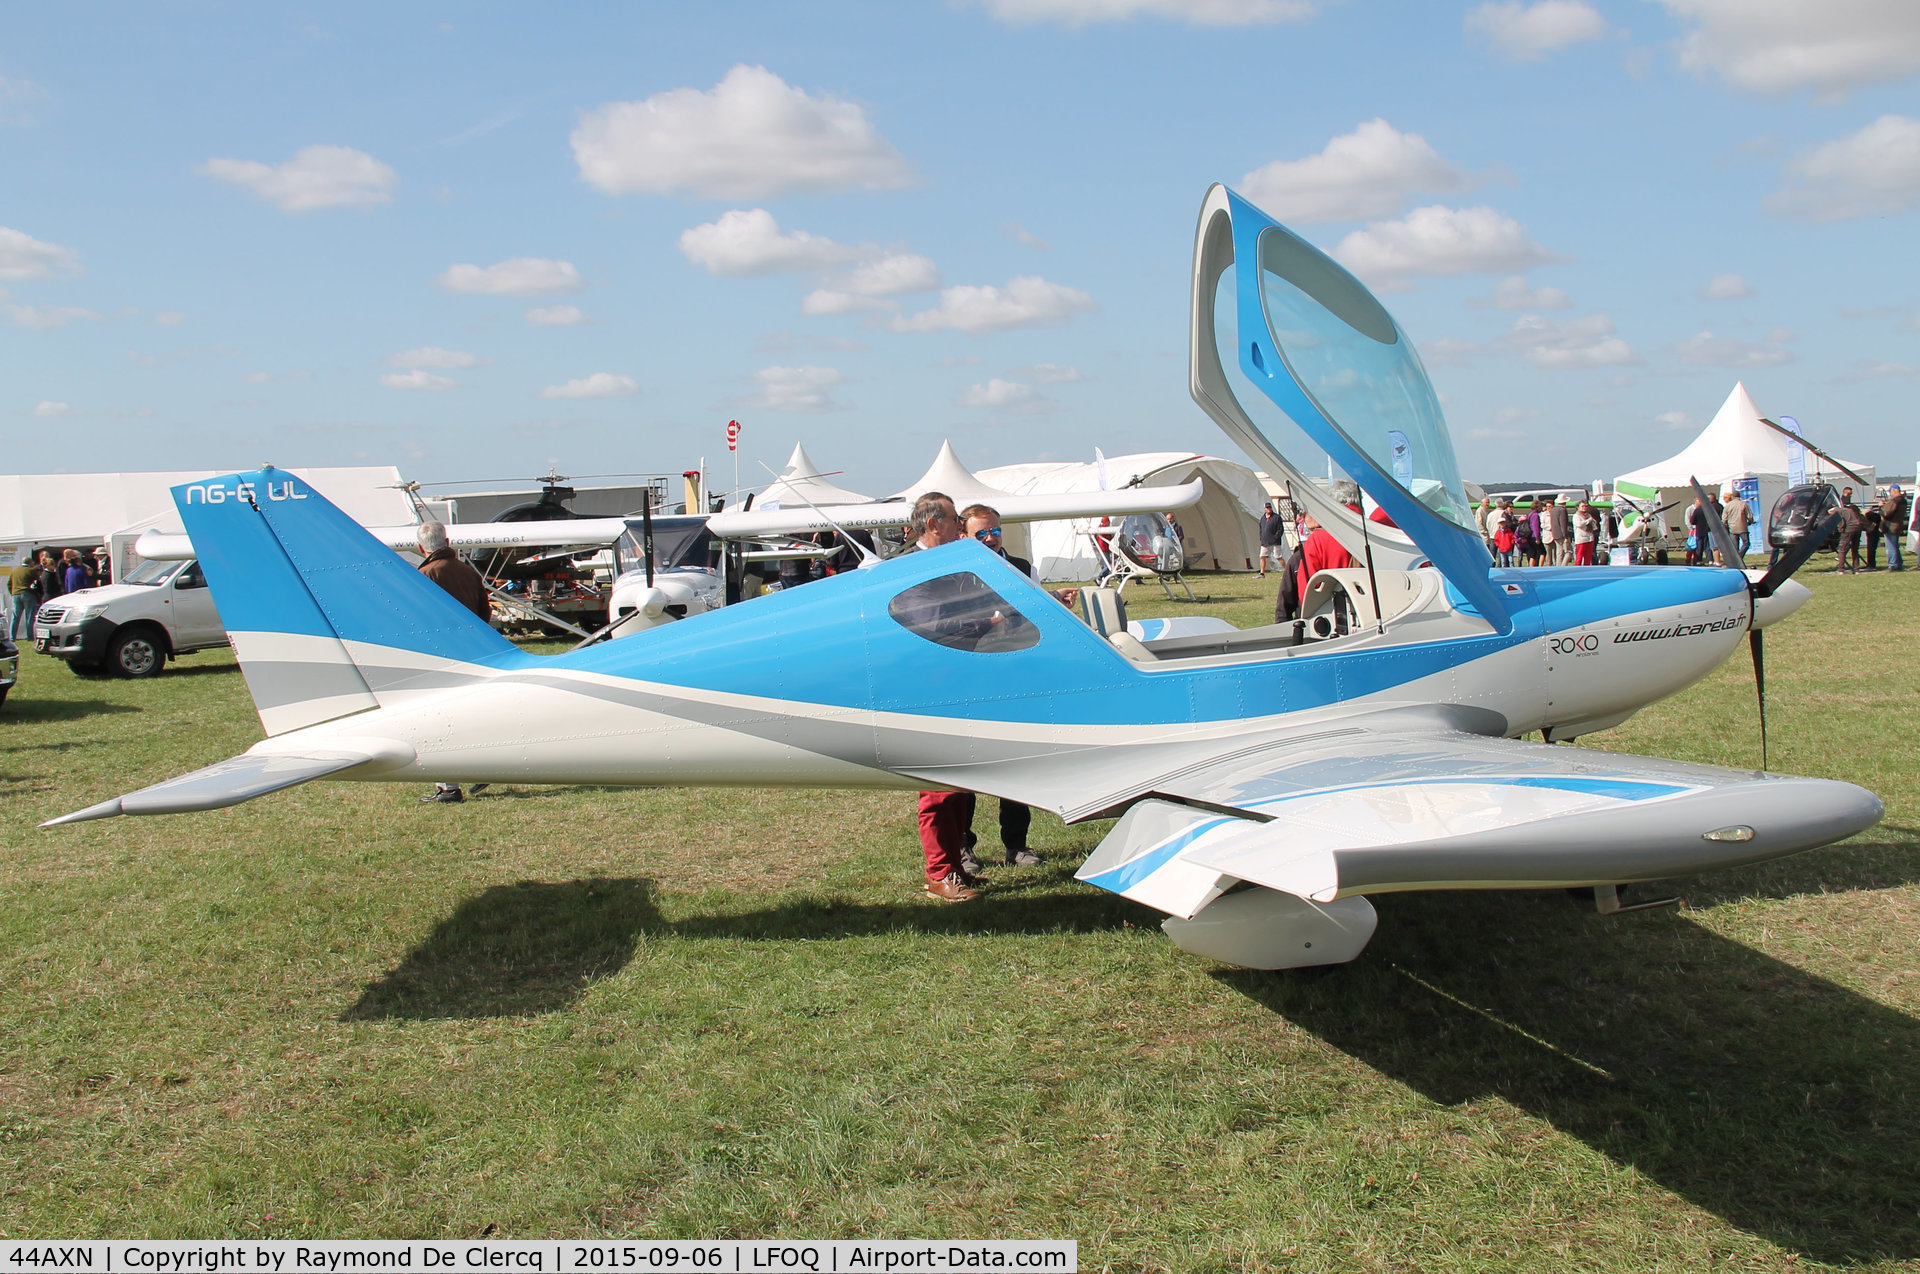 Aircraft 44axn 2014 roko aero ng6 ul c n 001 photo by for Salon ulm blois